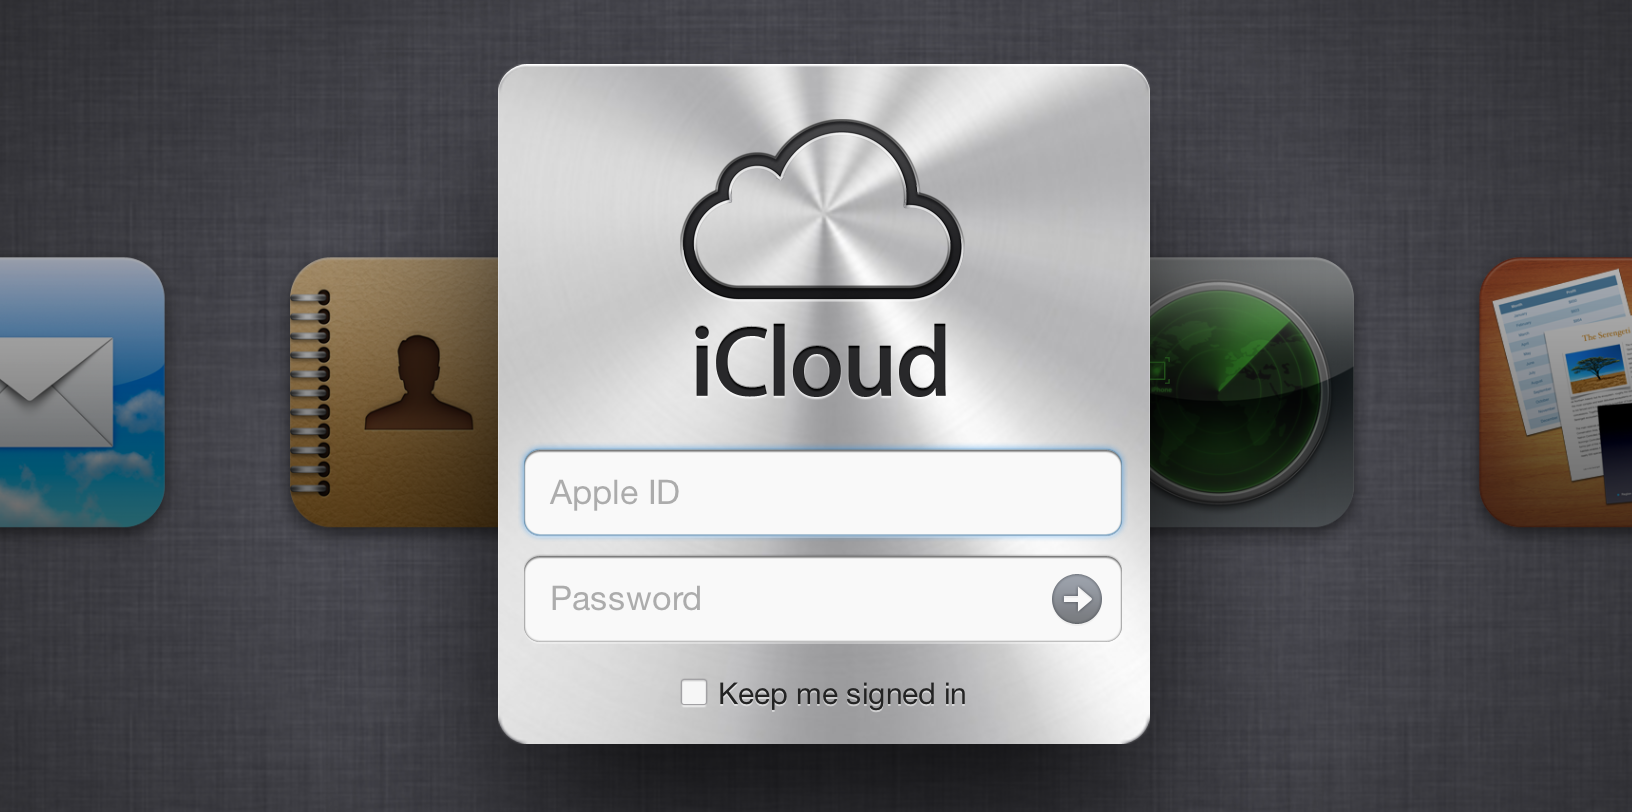 iPad Forgot Password to iCloud Fix